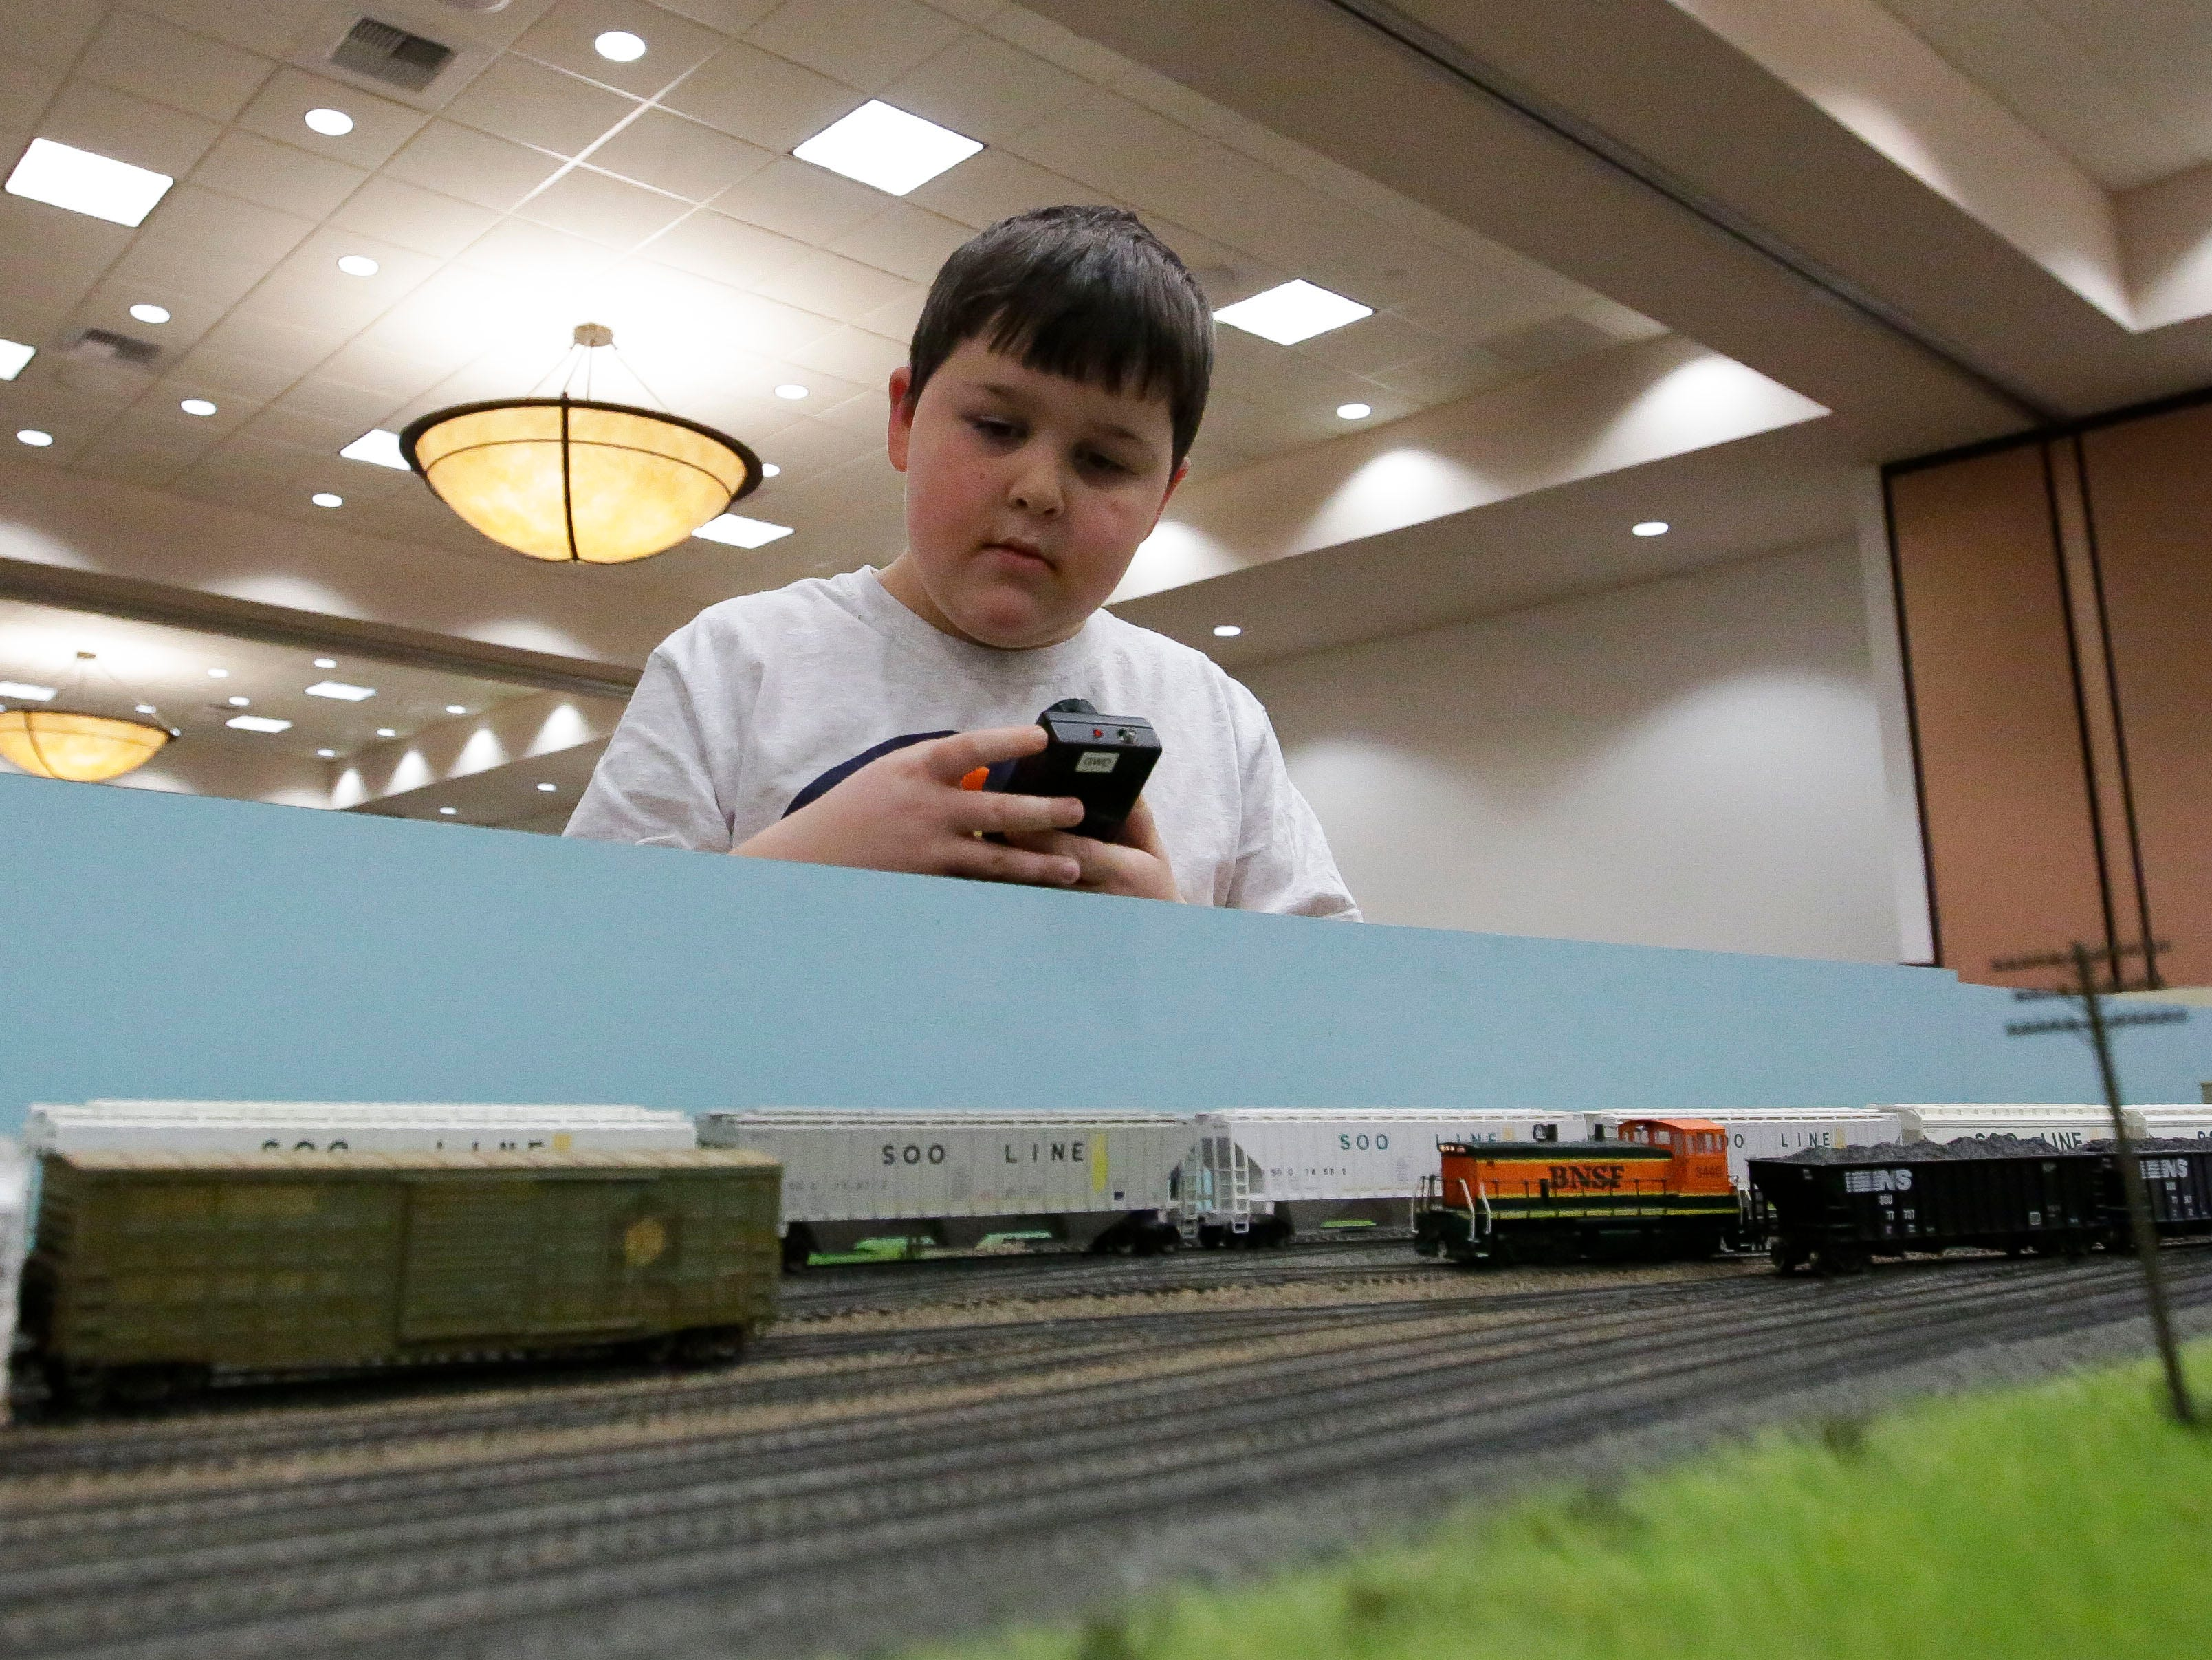 Isaac Drewiske controls a model train on Sunday, February 3, 2019, during the Arctic Run Model Railroad Show at the Holiday Inn Convention Center in Stevens Point, Wis.Tork Mason/USA TODAY NETWORK-Wisconsin